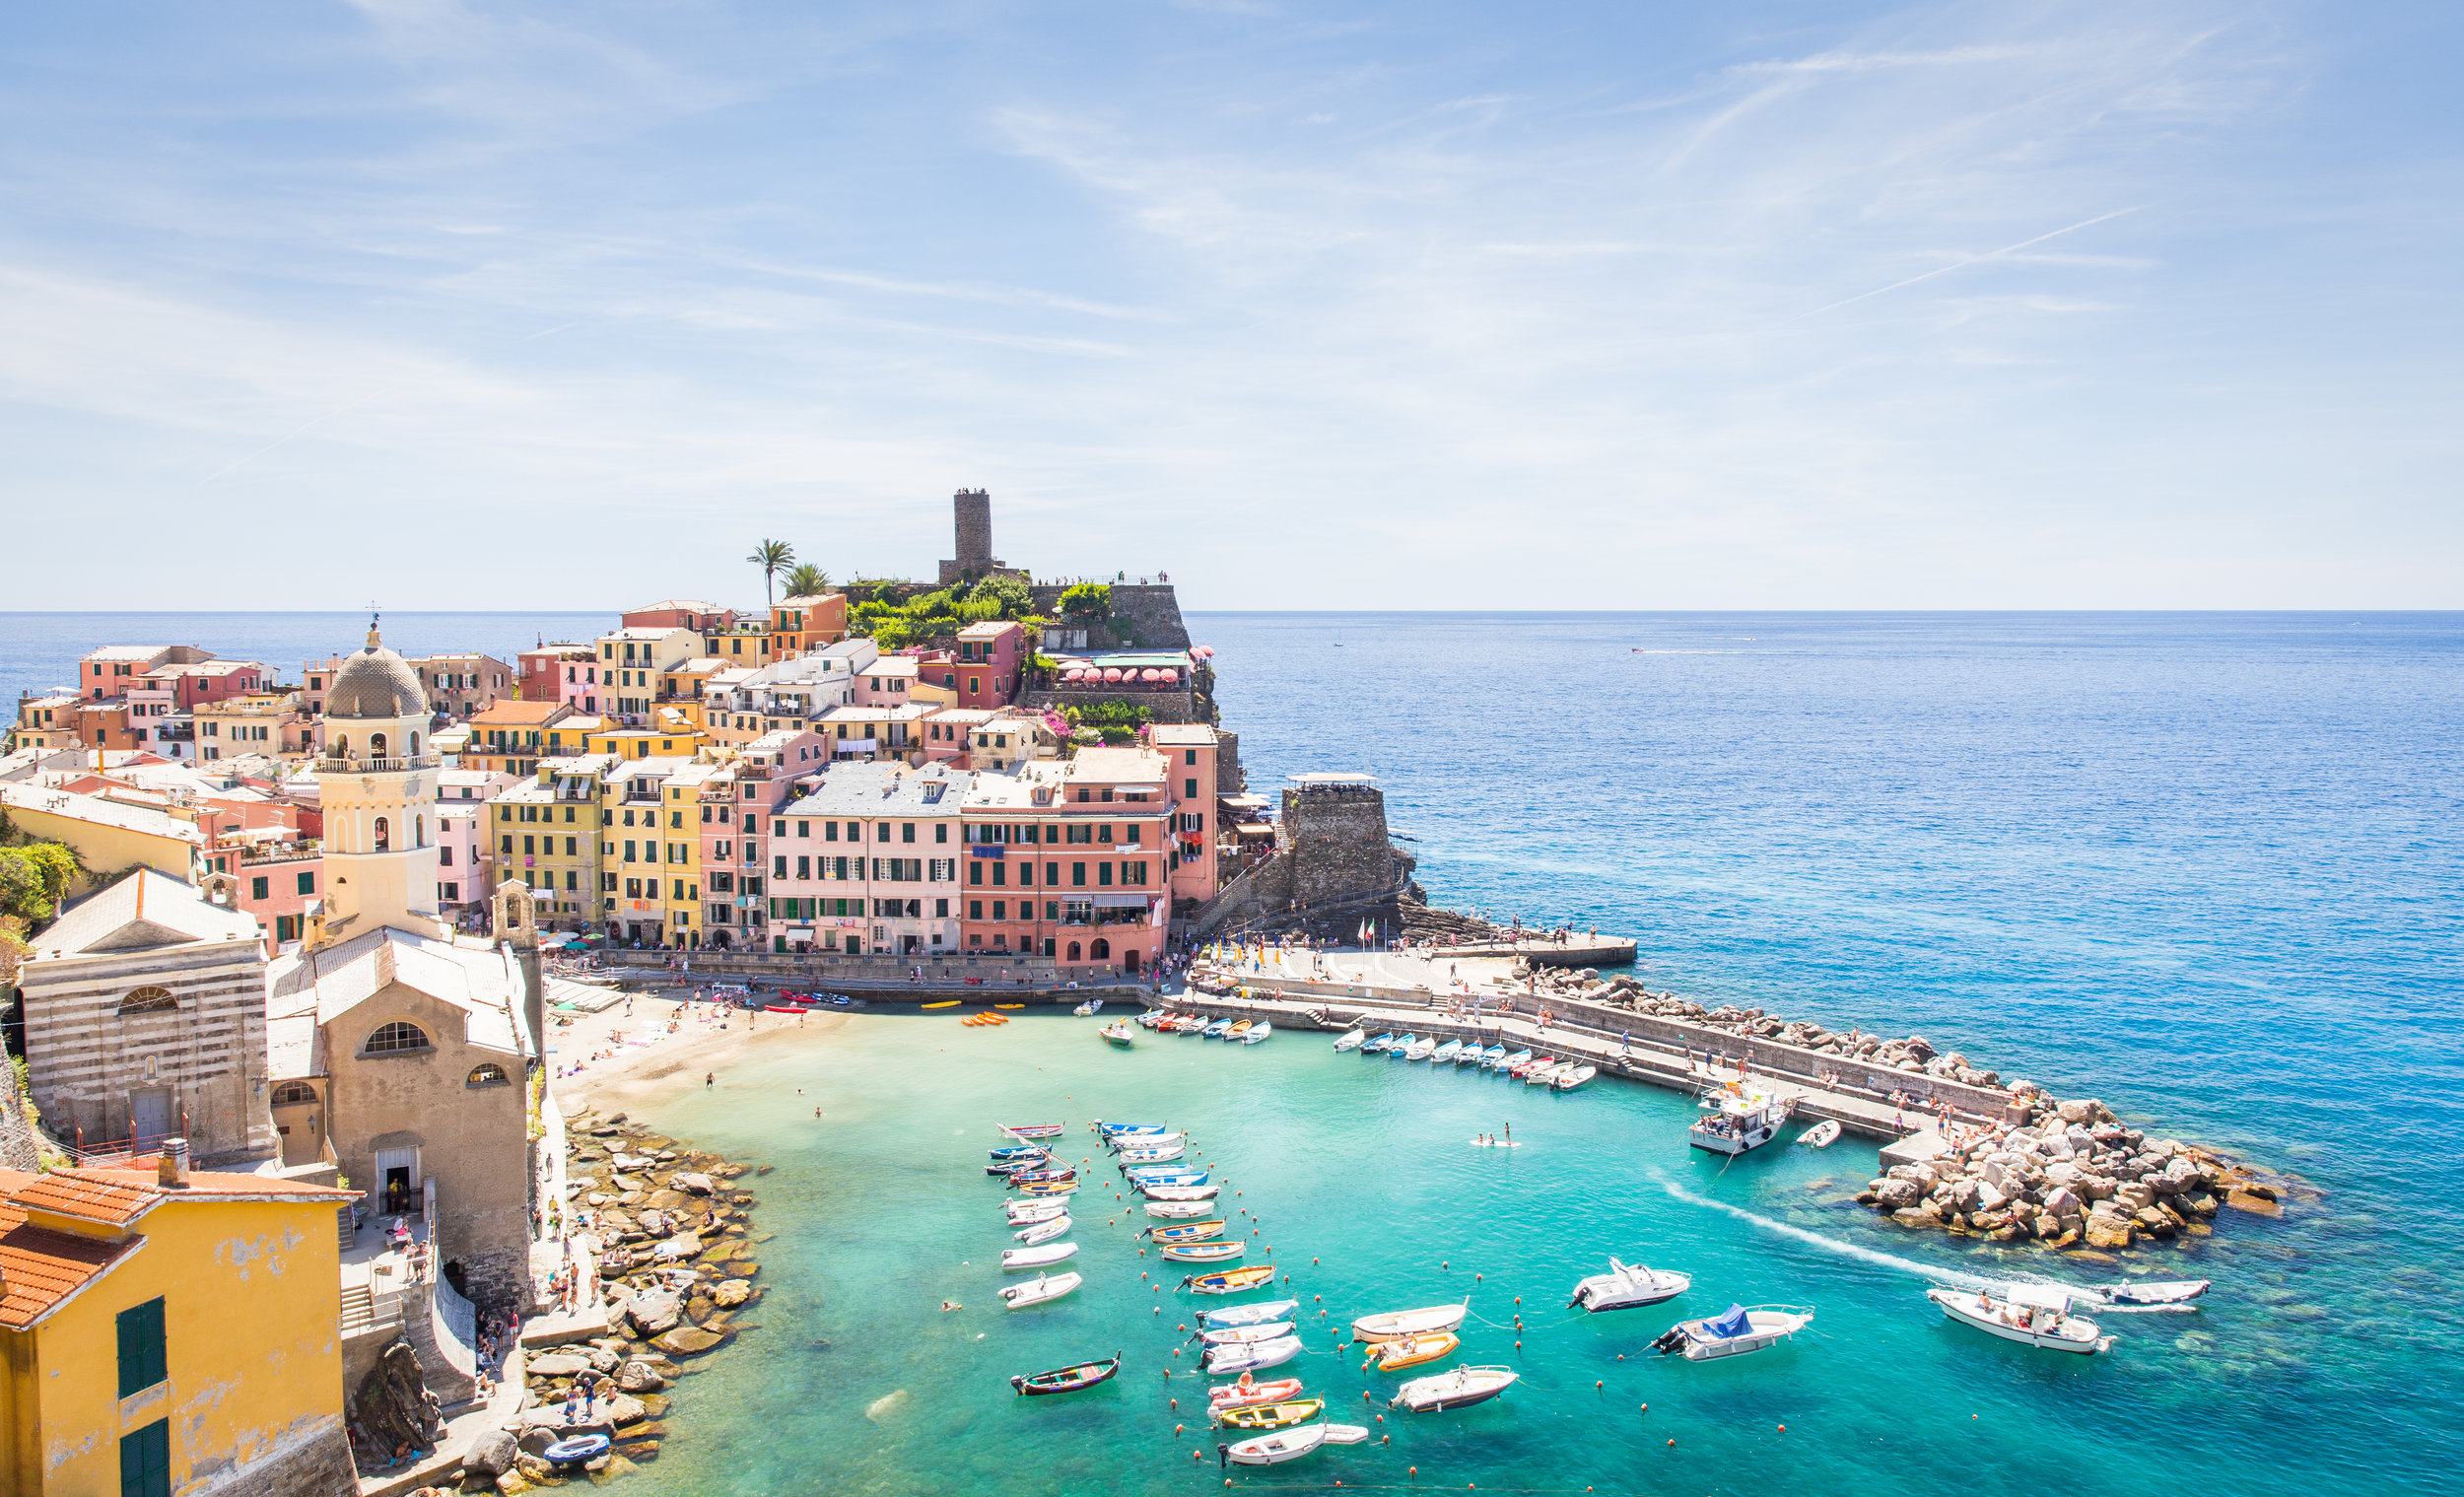 Vernazza (click to enlarge)